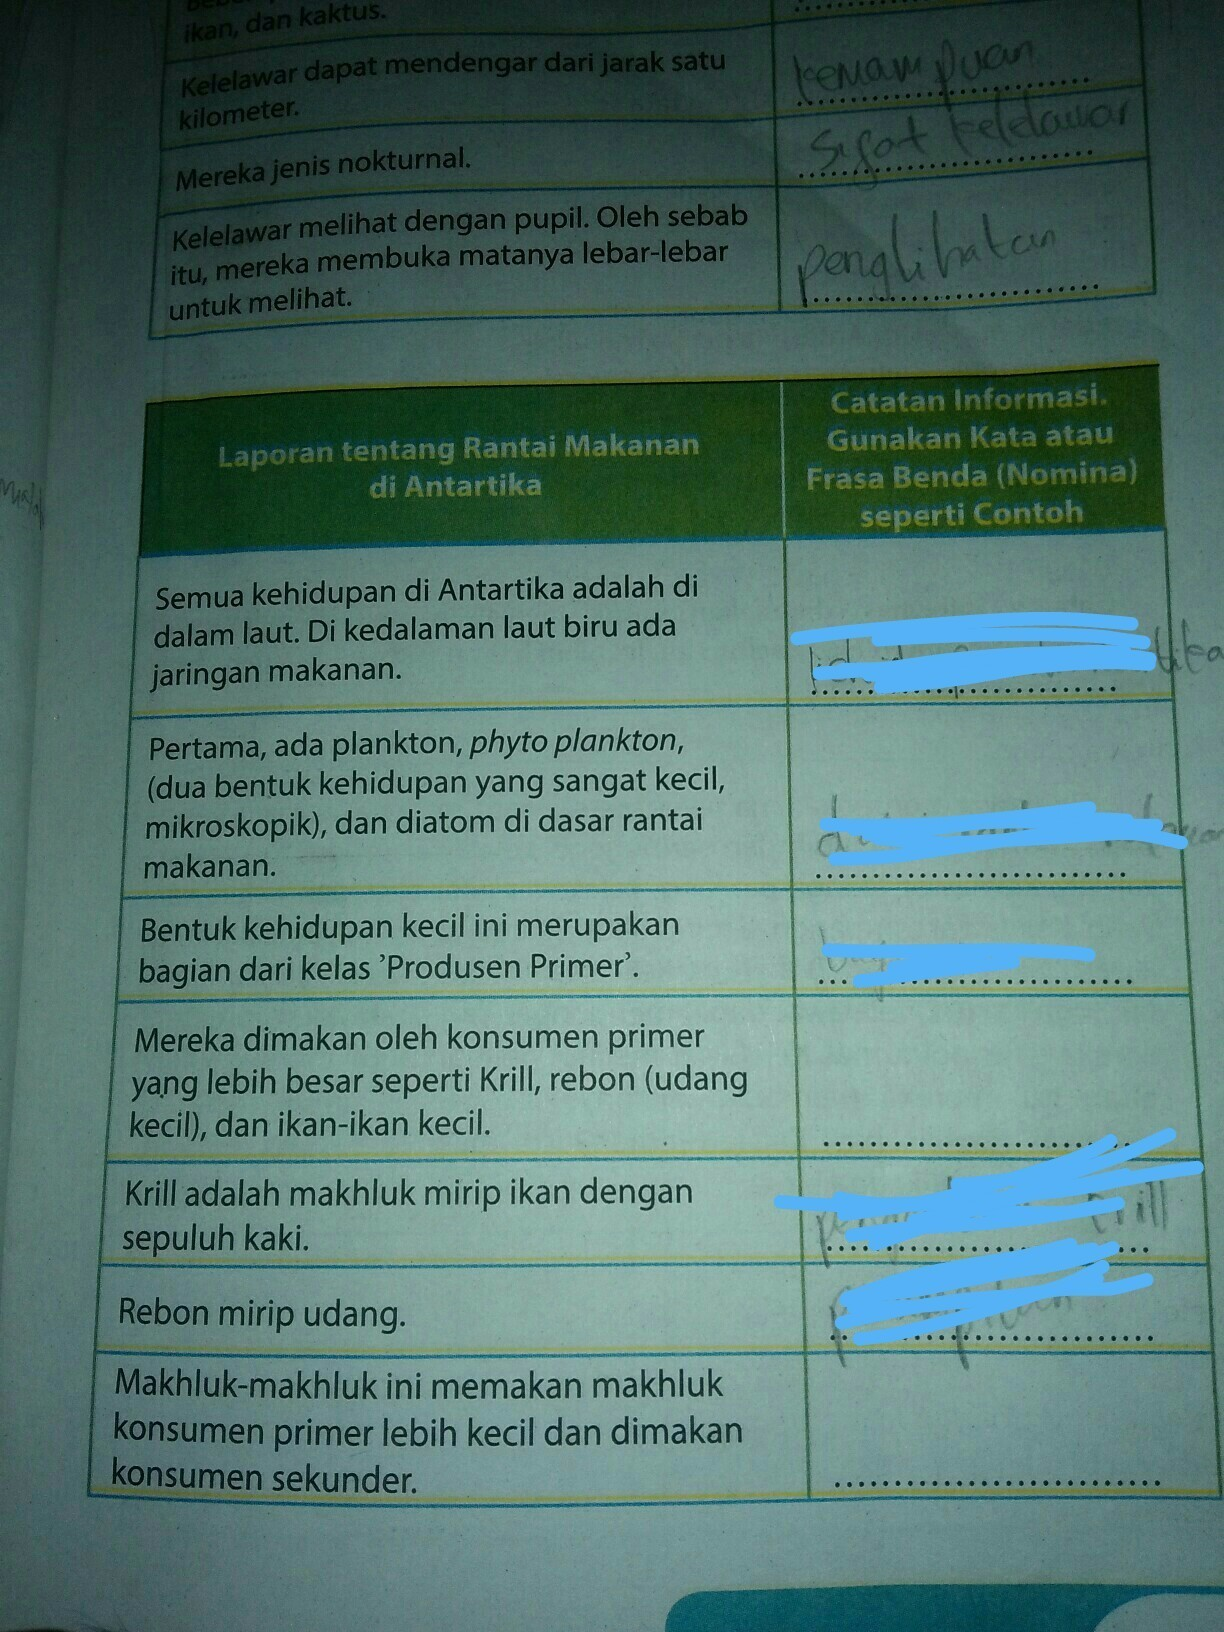 Laporan Tentang Kelelawar : laporan, tentang, kelelawar, Laporan, Tentang, Rantai, Makanan, Antartika., Catatan, Brainly.co.id